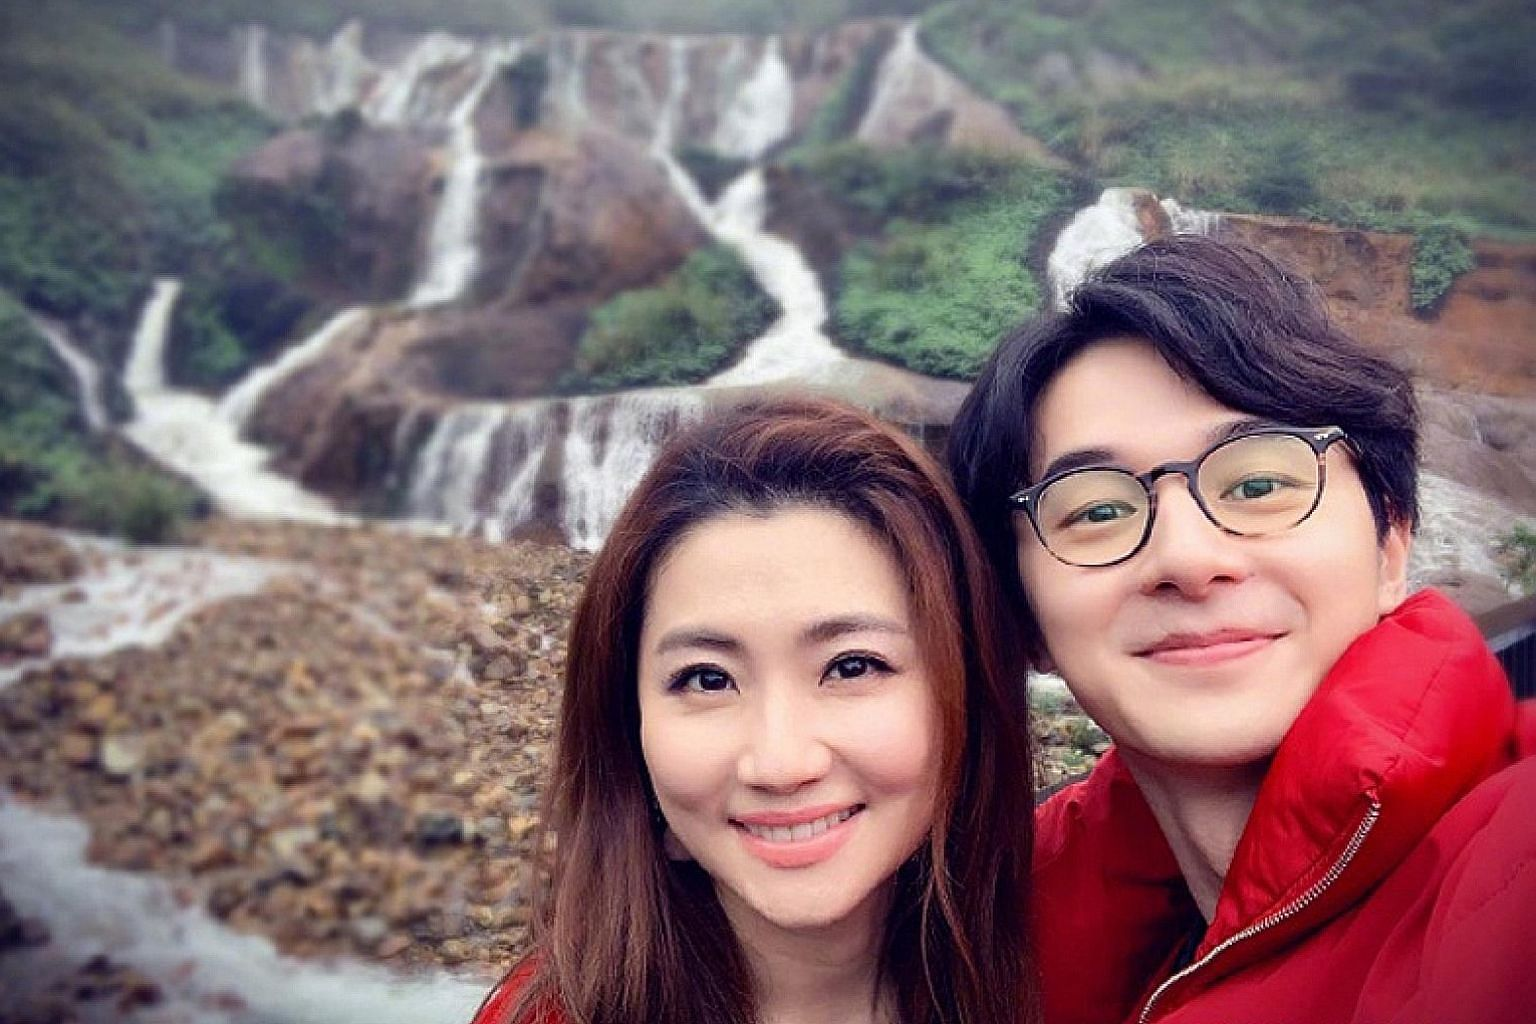 Singer Selina Jen posted several photos of herself with actor Derek Chang on Weibo and thanked him for appearing in her life. The pair met on Chinese reality dating show Meeting Mr Right.